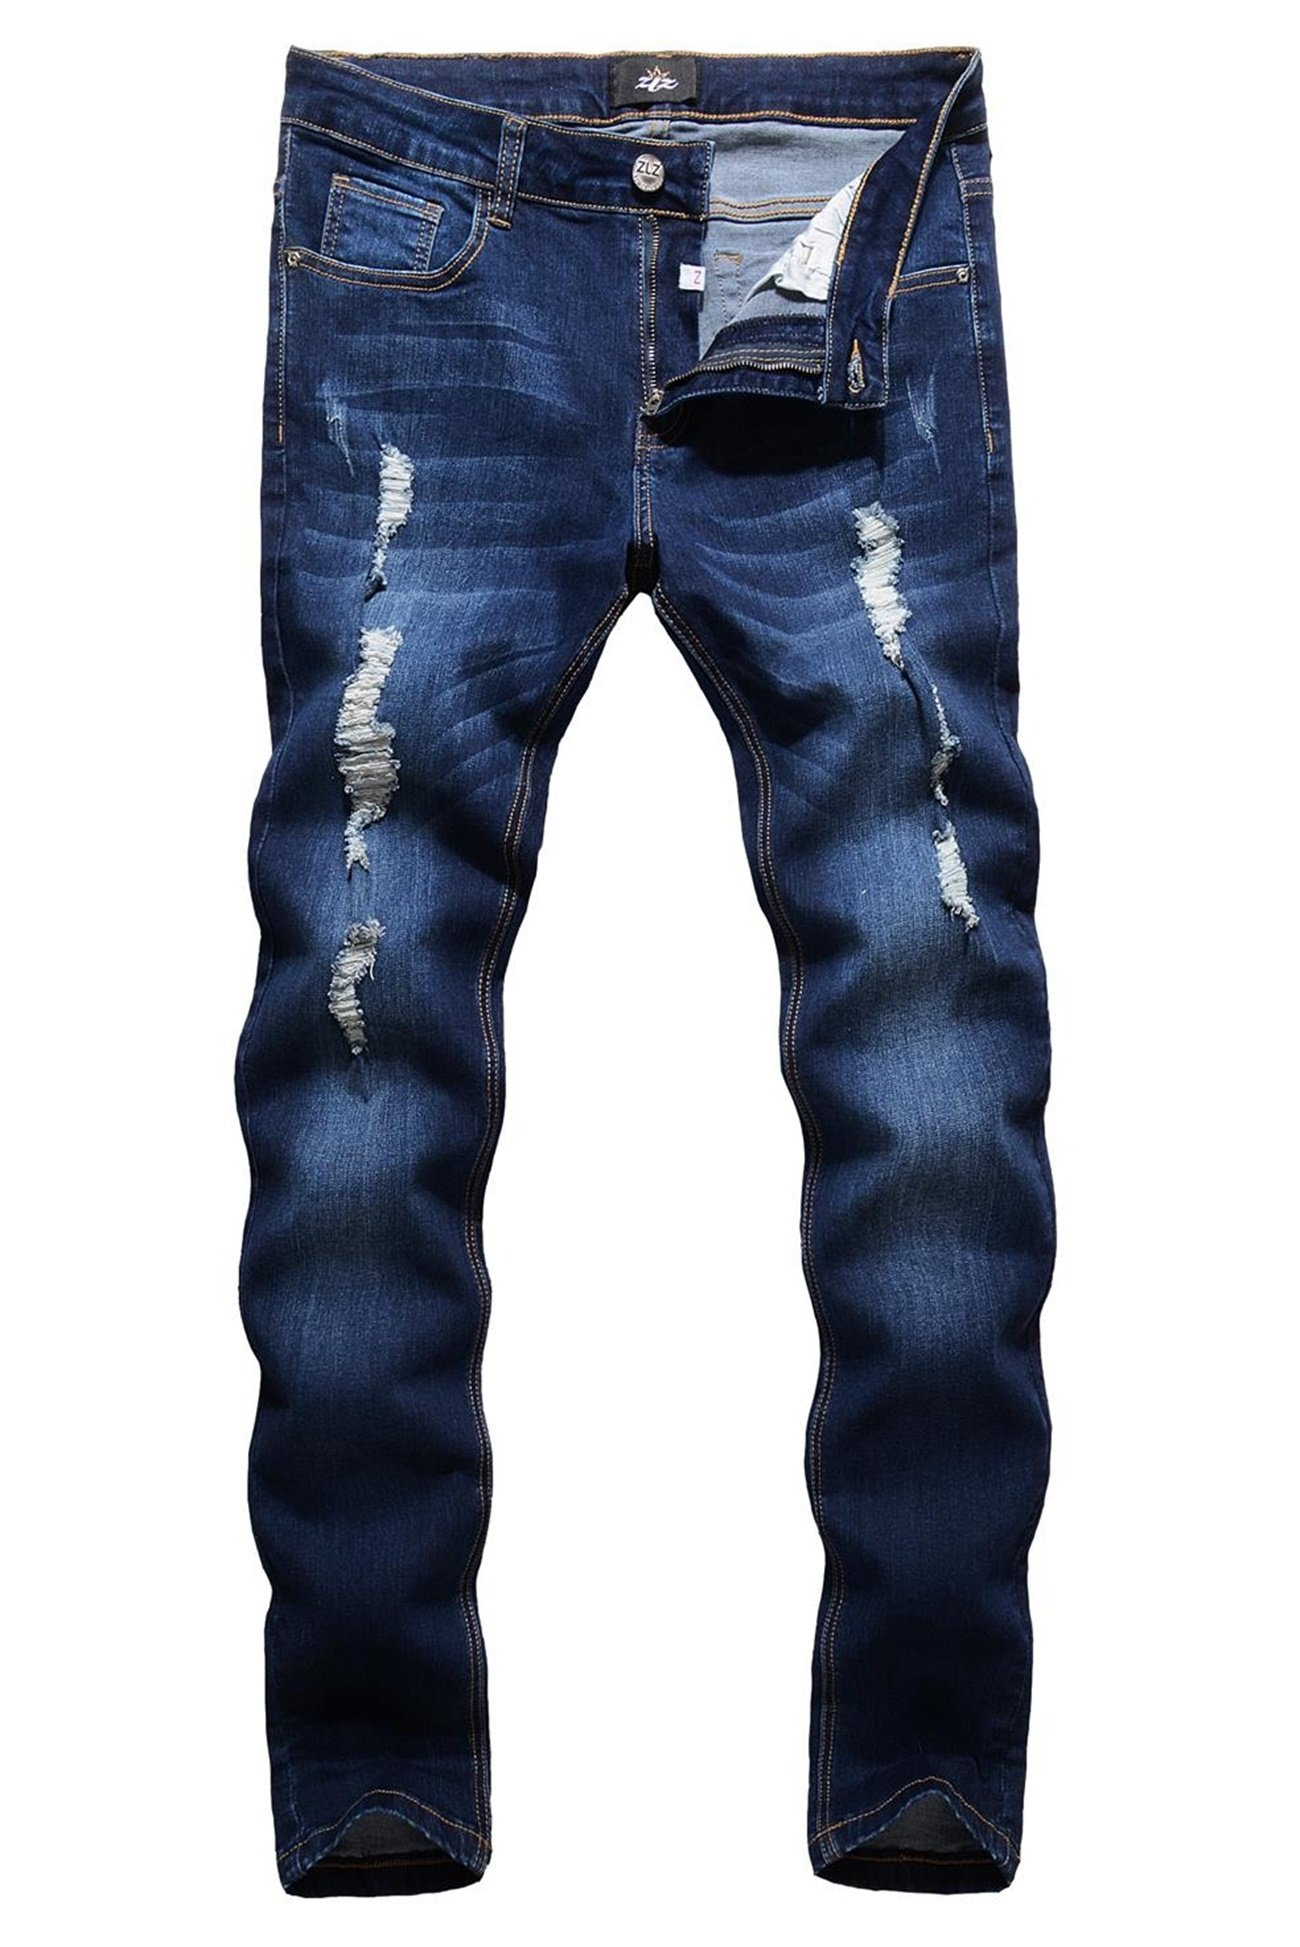 ZLZ Men's Ripped Skinny Distressed Destroyed Slim Fit Stretch Biker Jeans Pants with Holes (34, Blue)